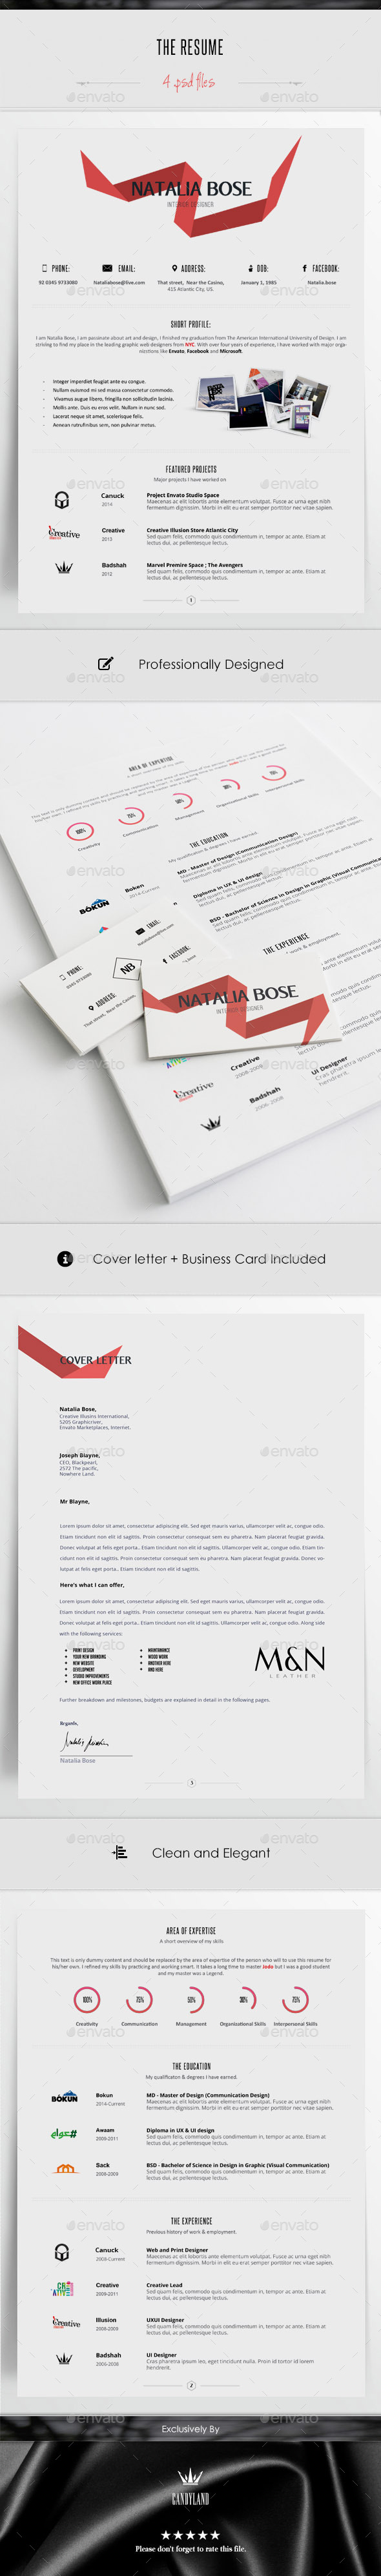 GraphicRiver The Resume 10491316